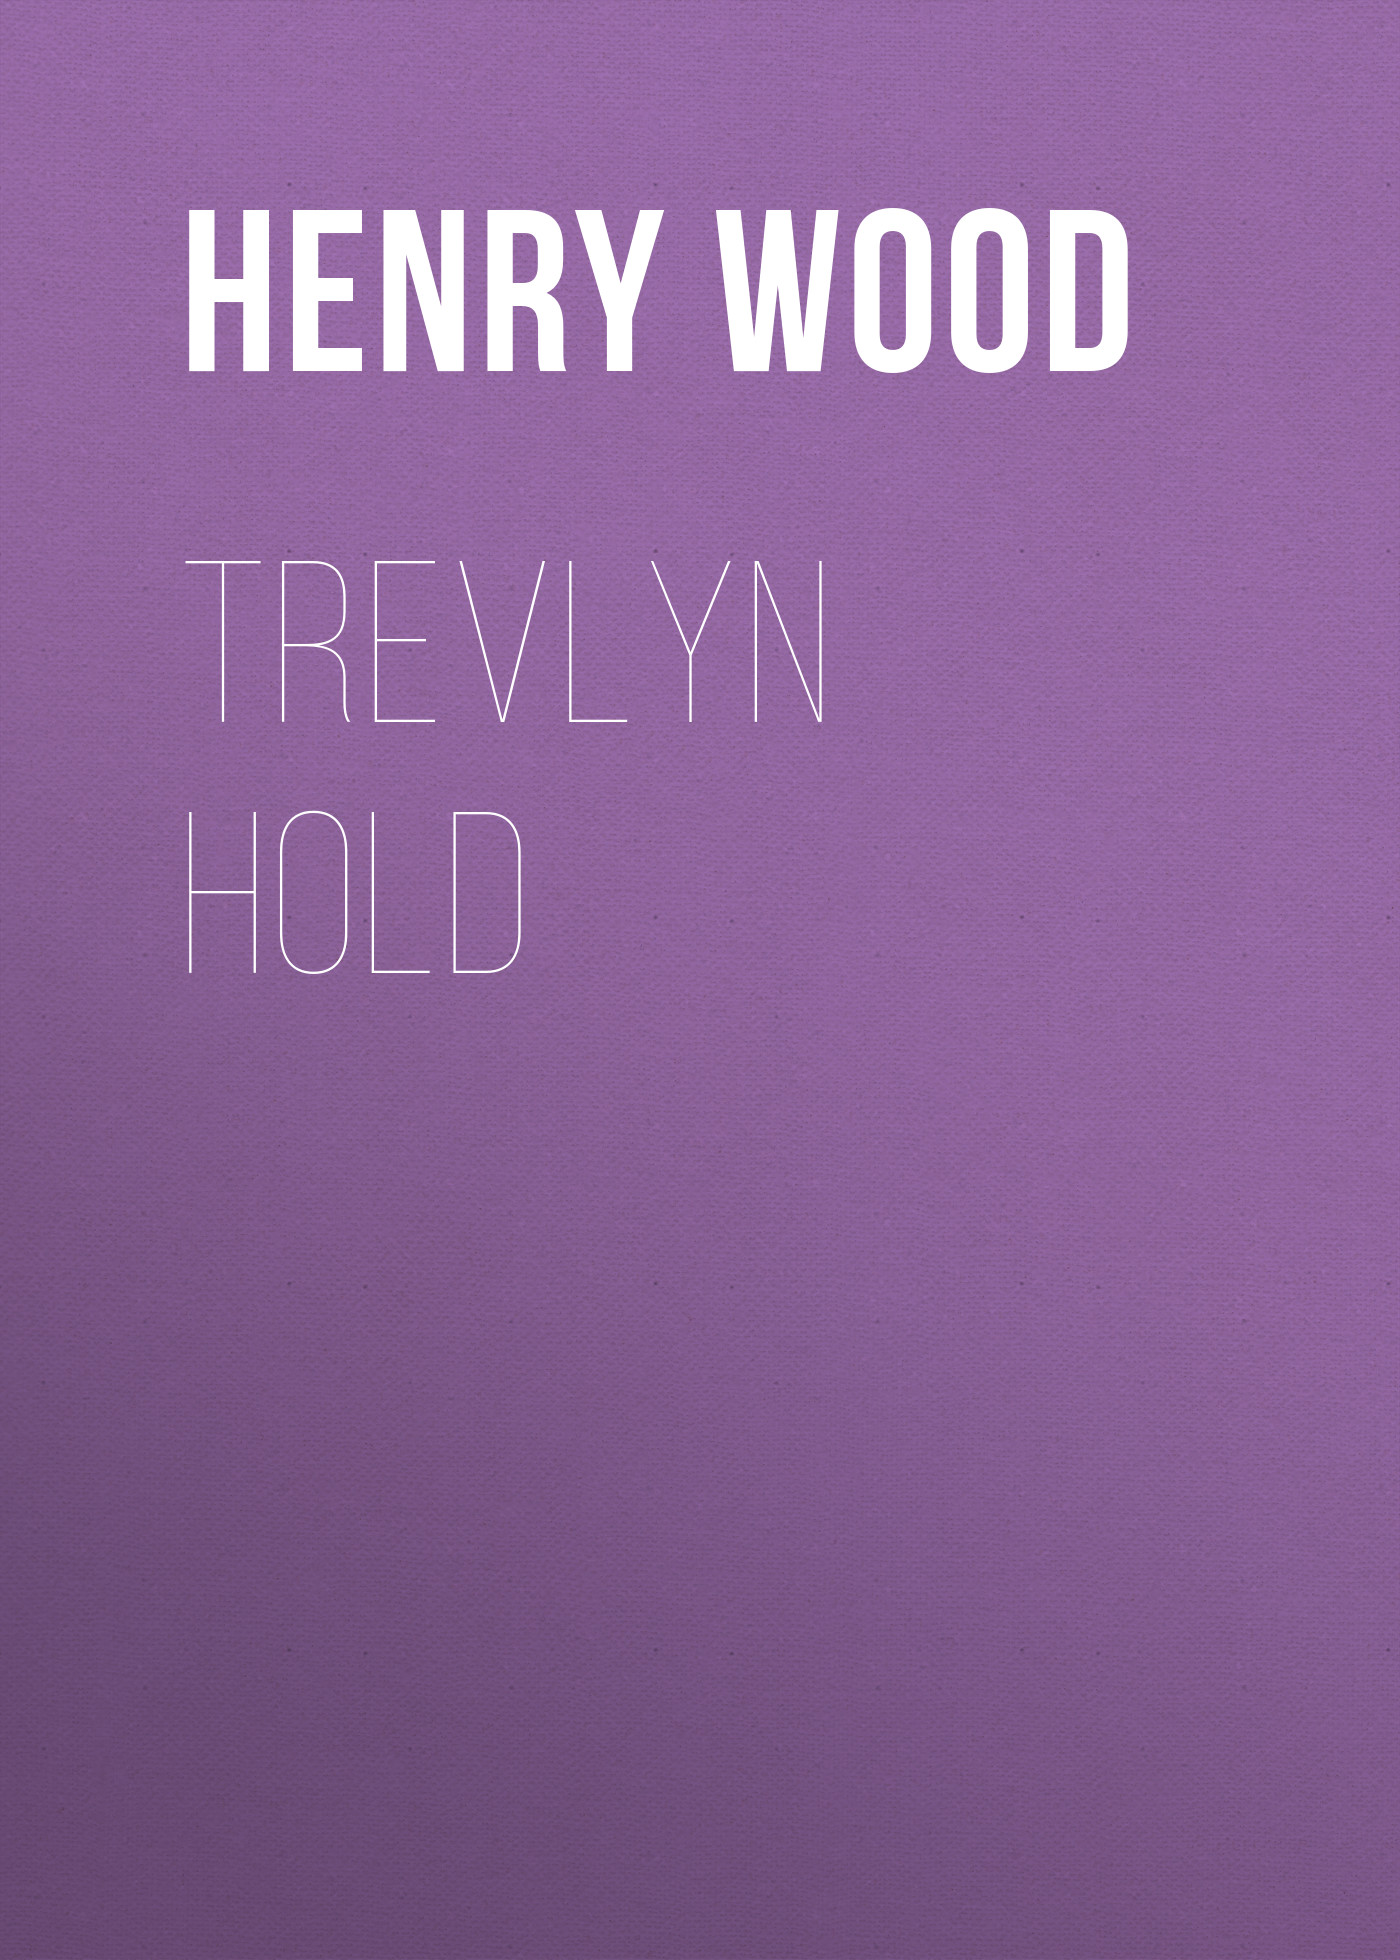 лучшая цена Henry Wood Trevlyn Hold